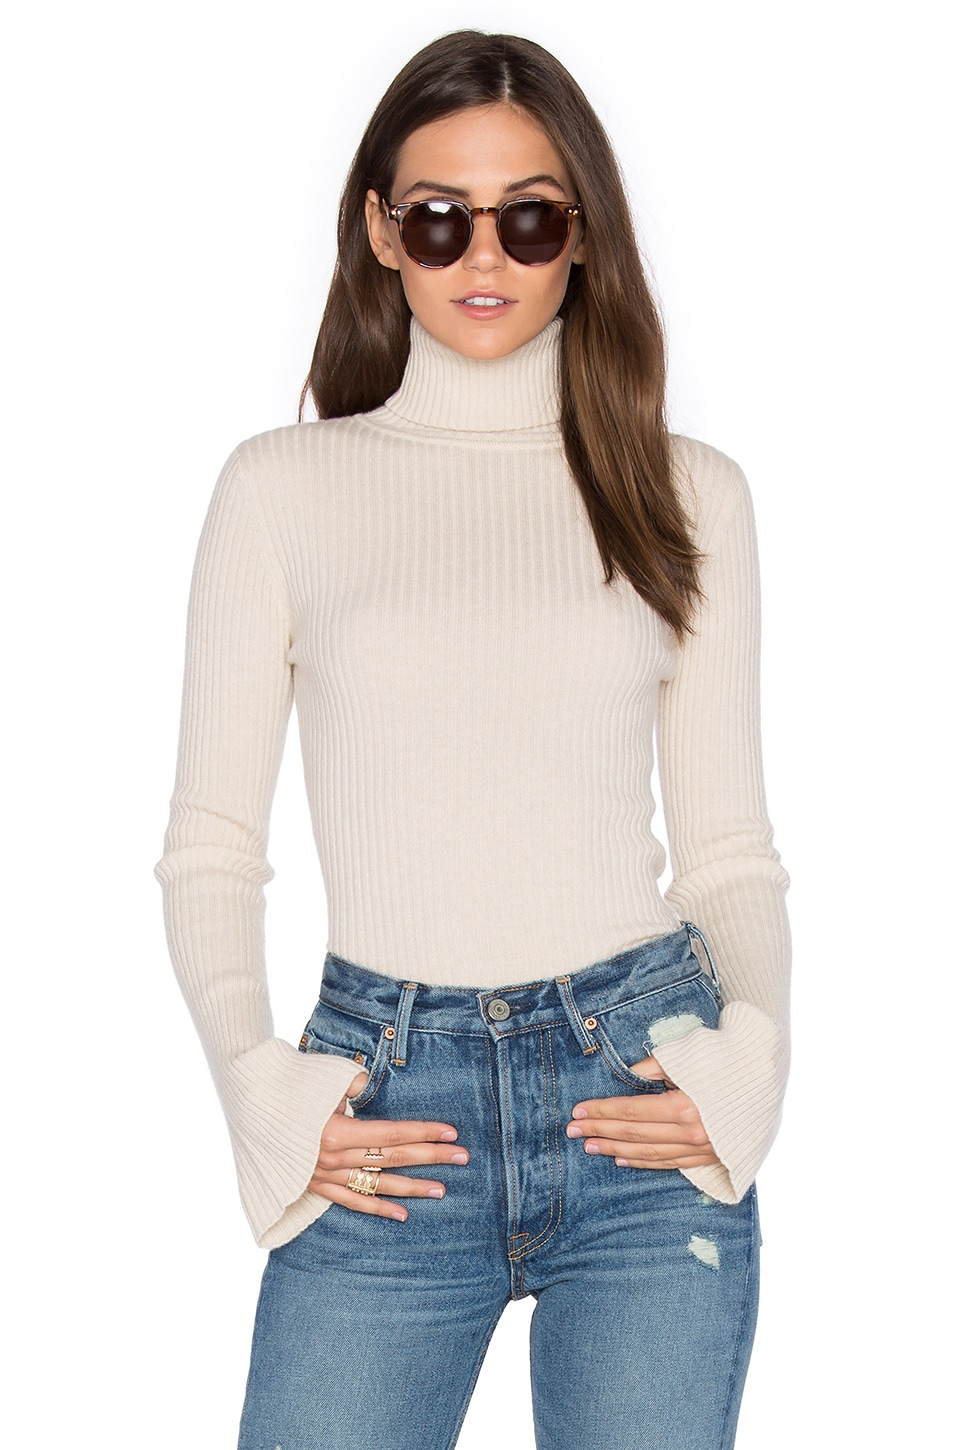 Autumn Cashmere x REVOLVE Ribbed Turtleneck Bell Sleeve Sweater in Cream